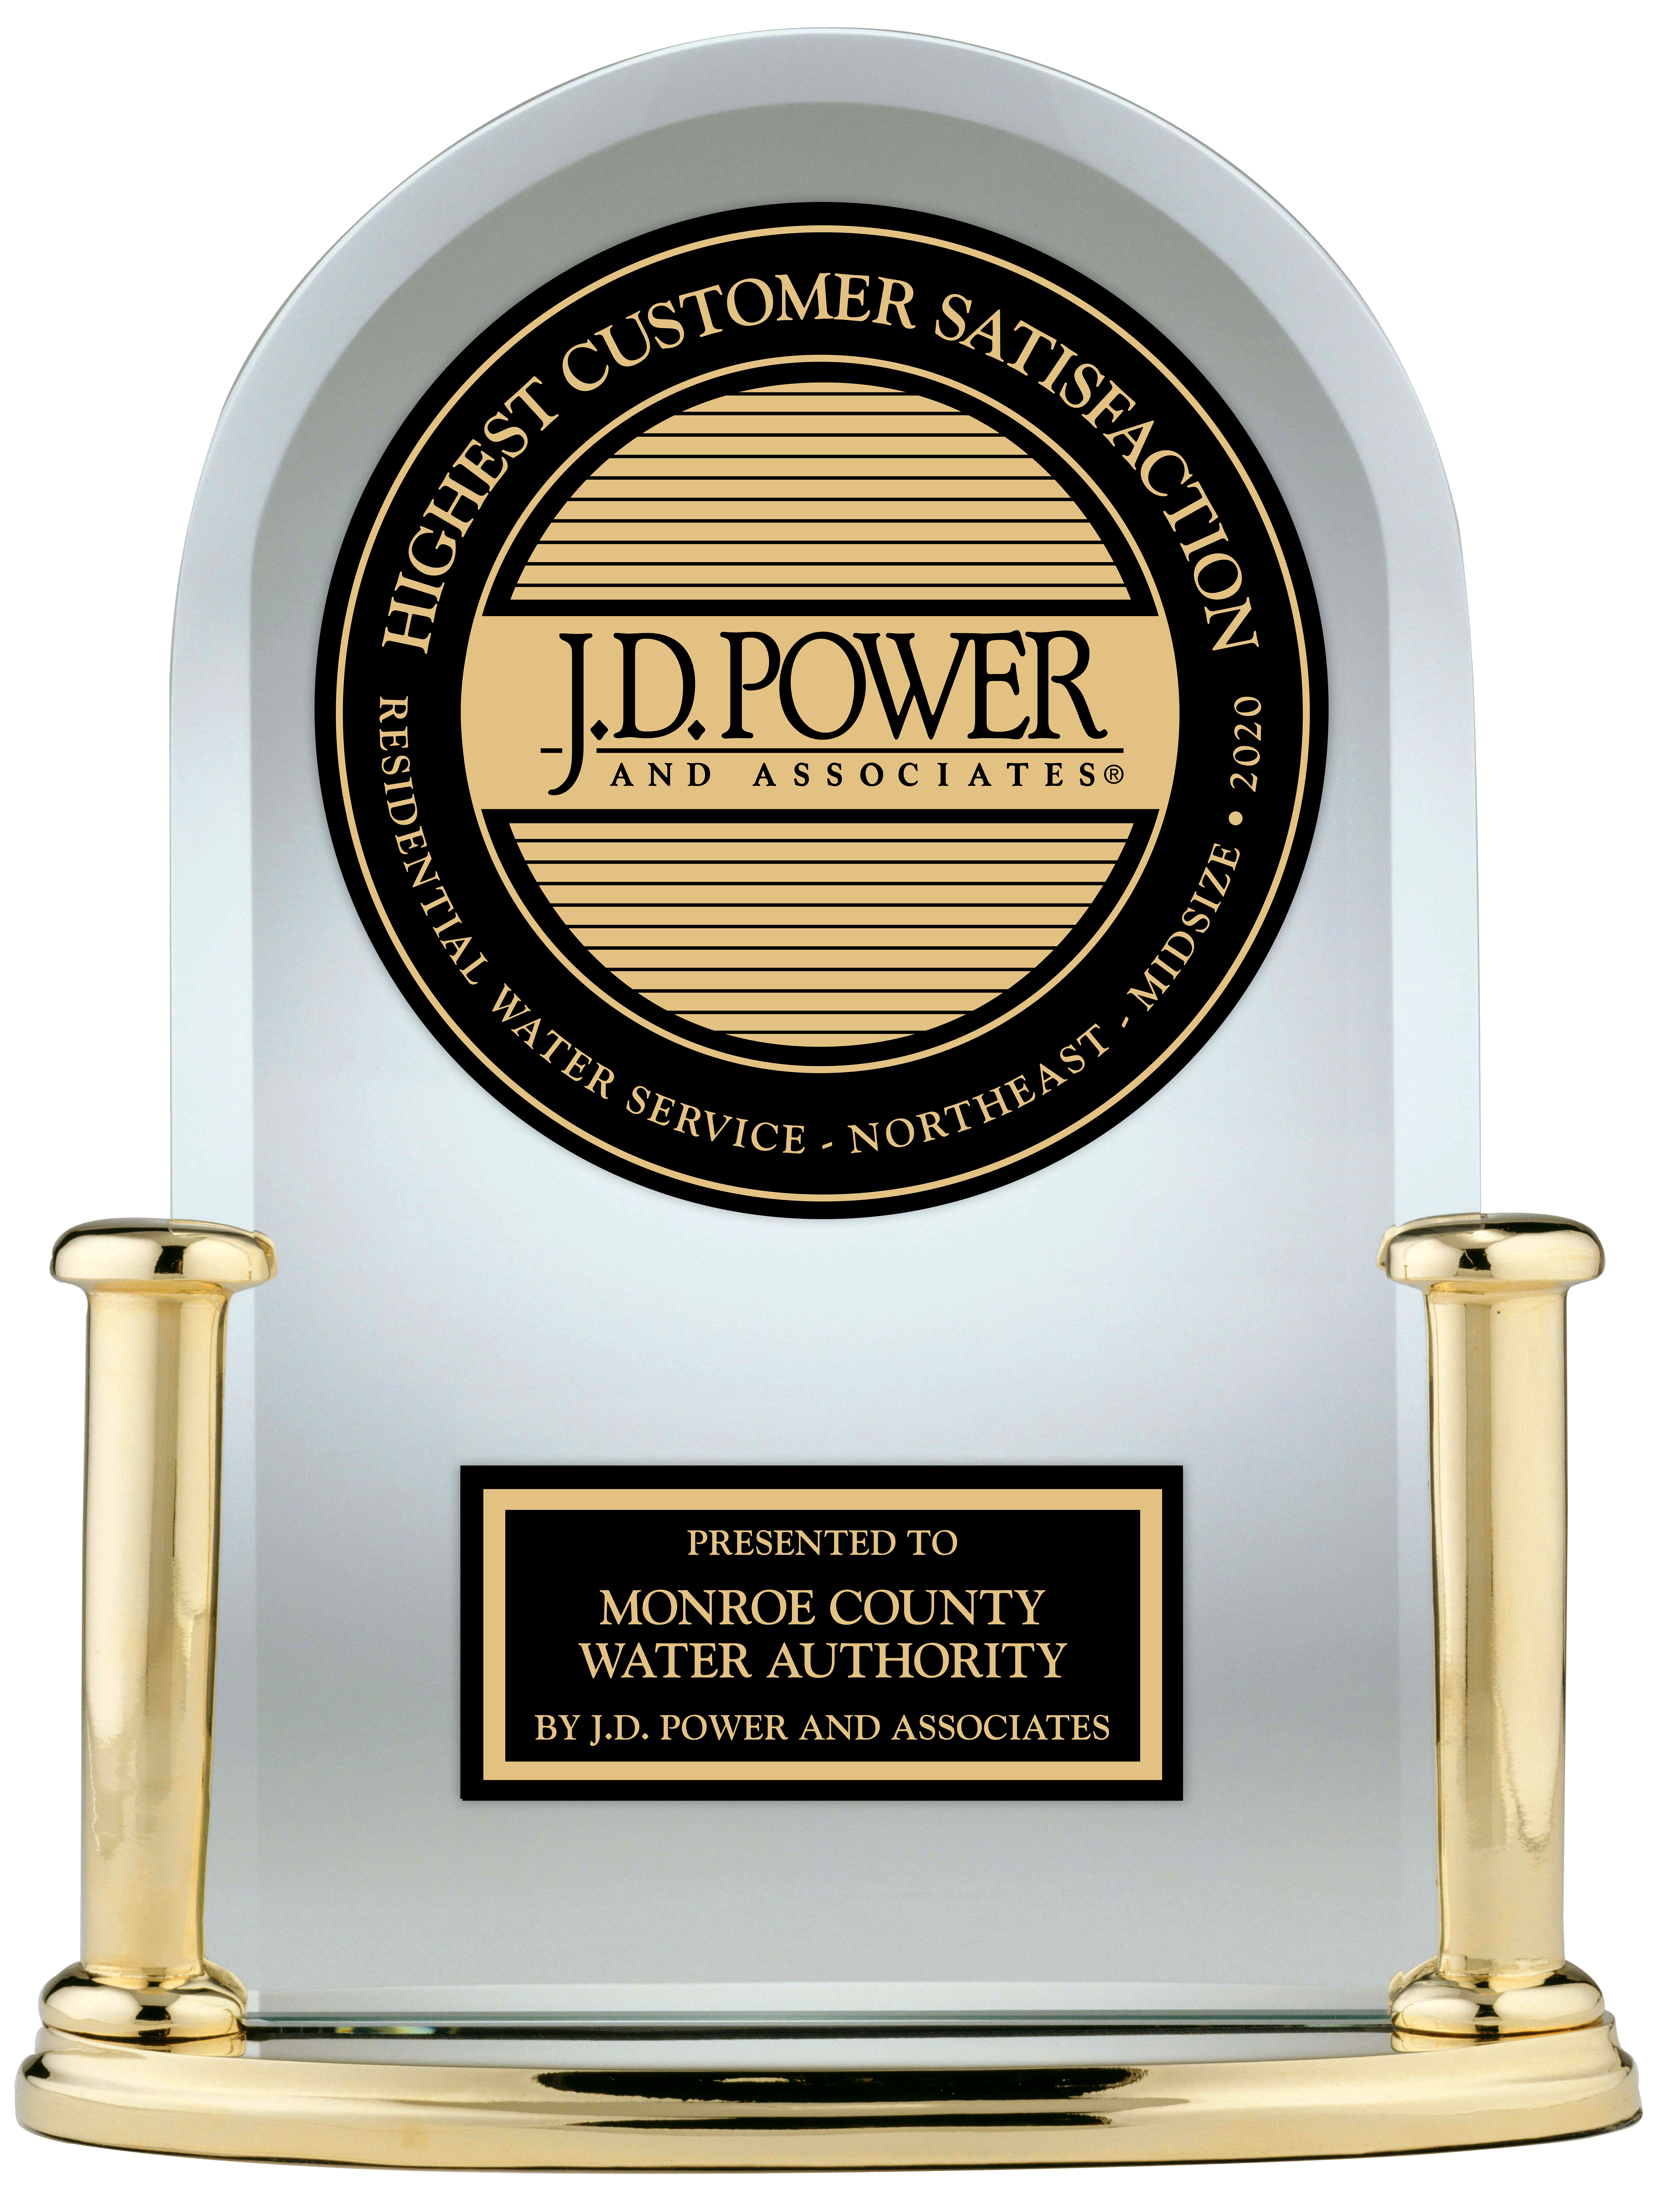 JD Power Award trophy